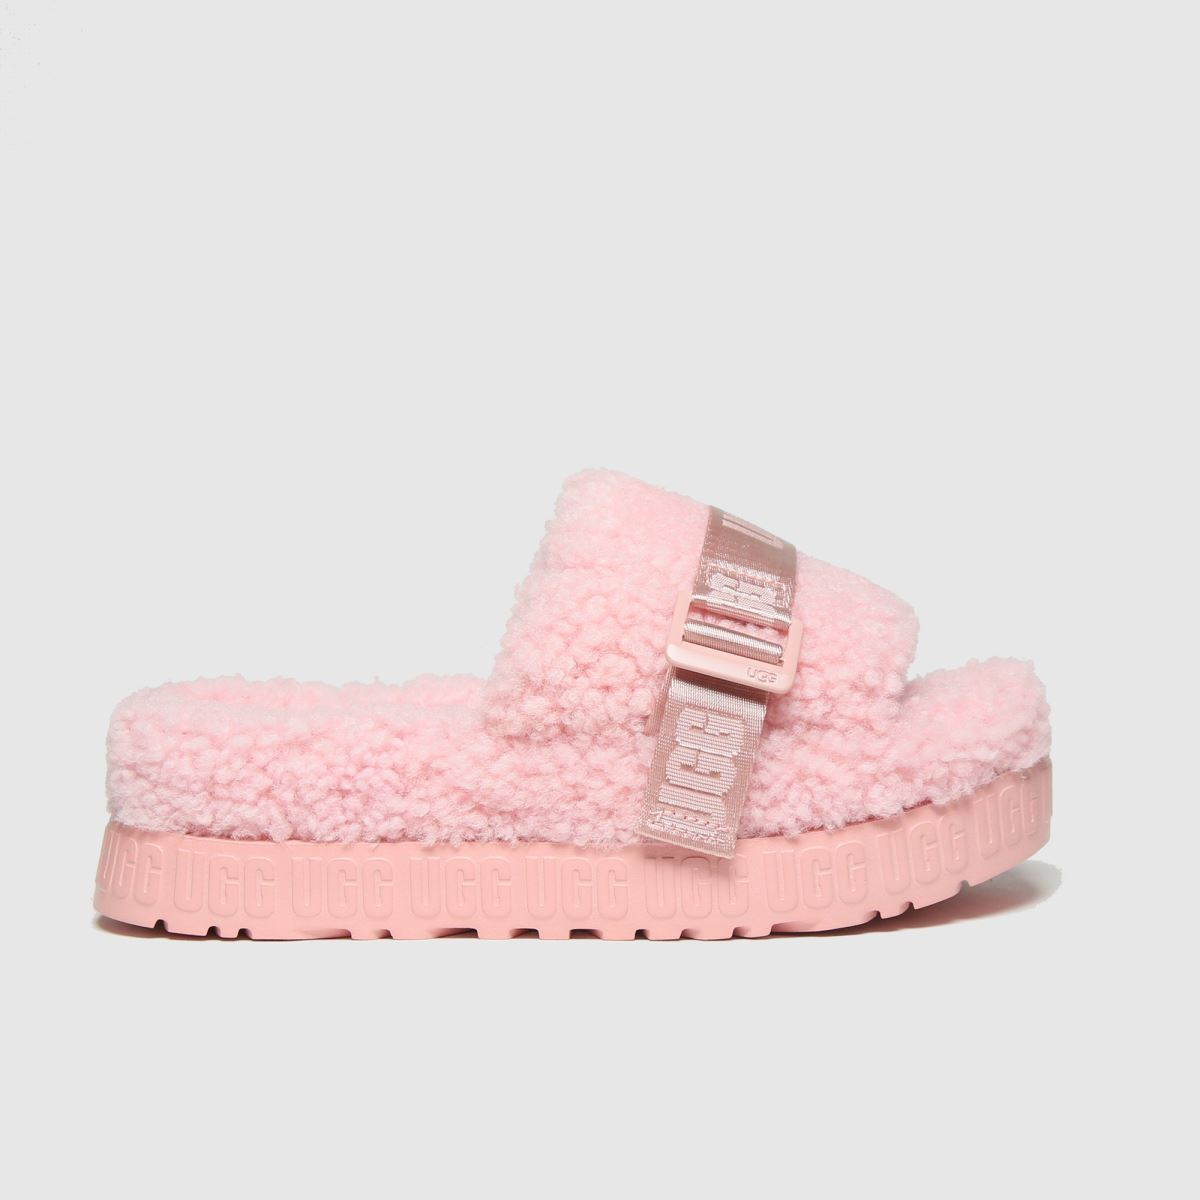 Ugg Pale Pink Fluffita Slippers